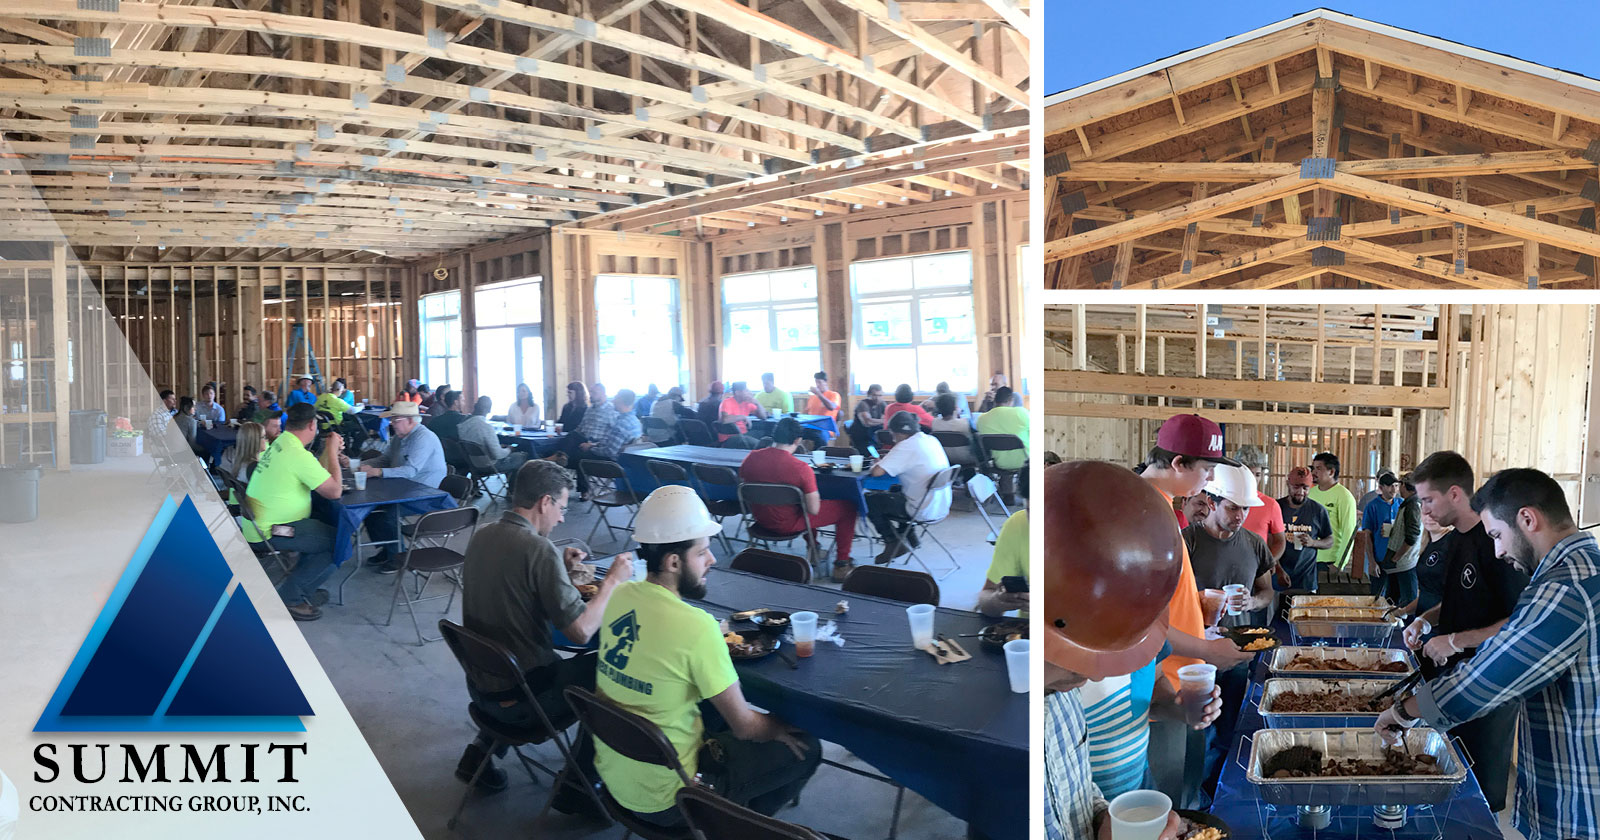 Photo collage of Summit construction workers at a barbecue luncheon on site